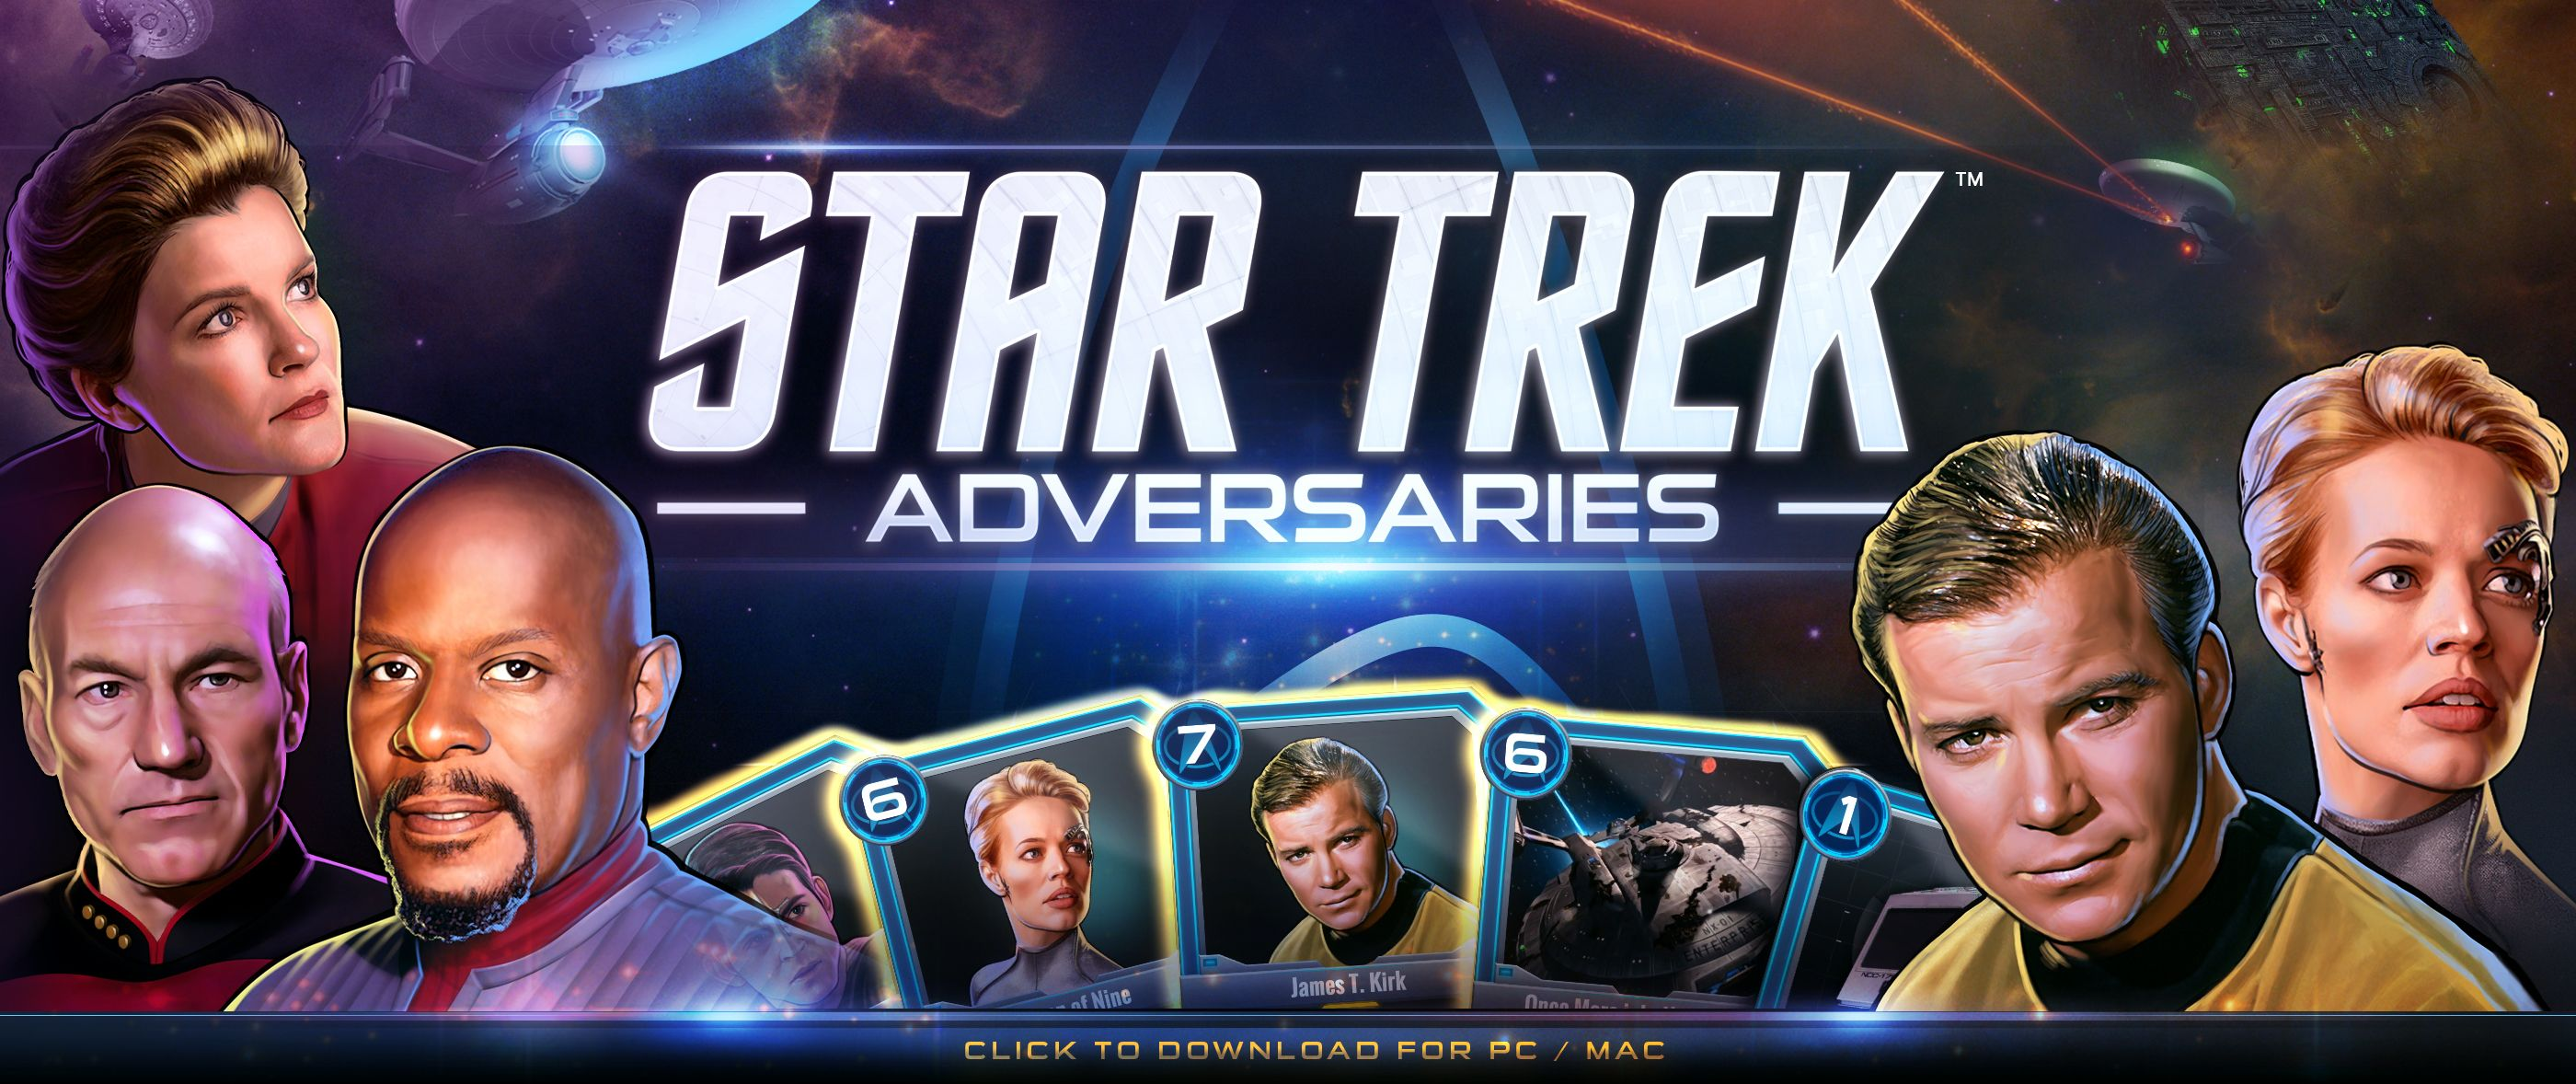 In Star Trek Adversaries Video Card Game Its the Captains